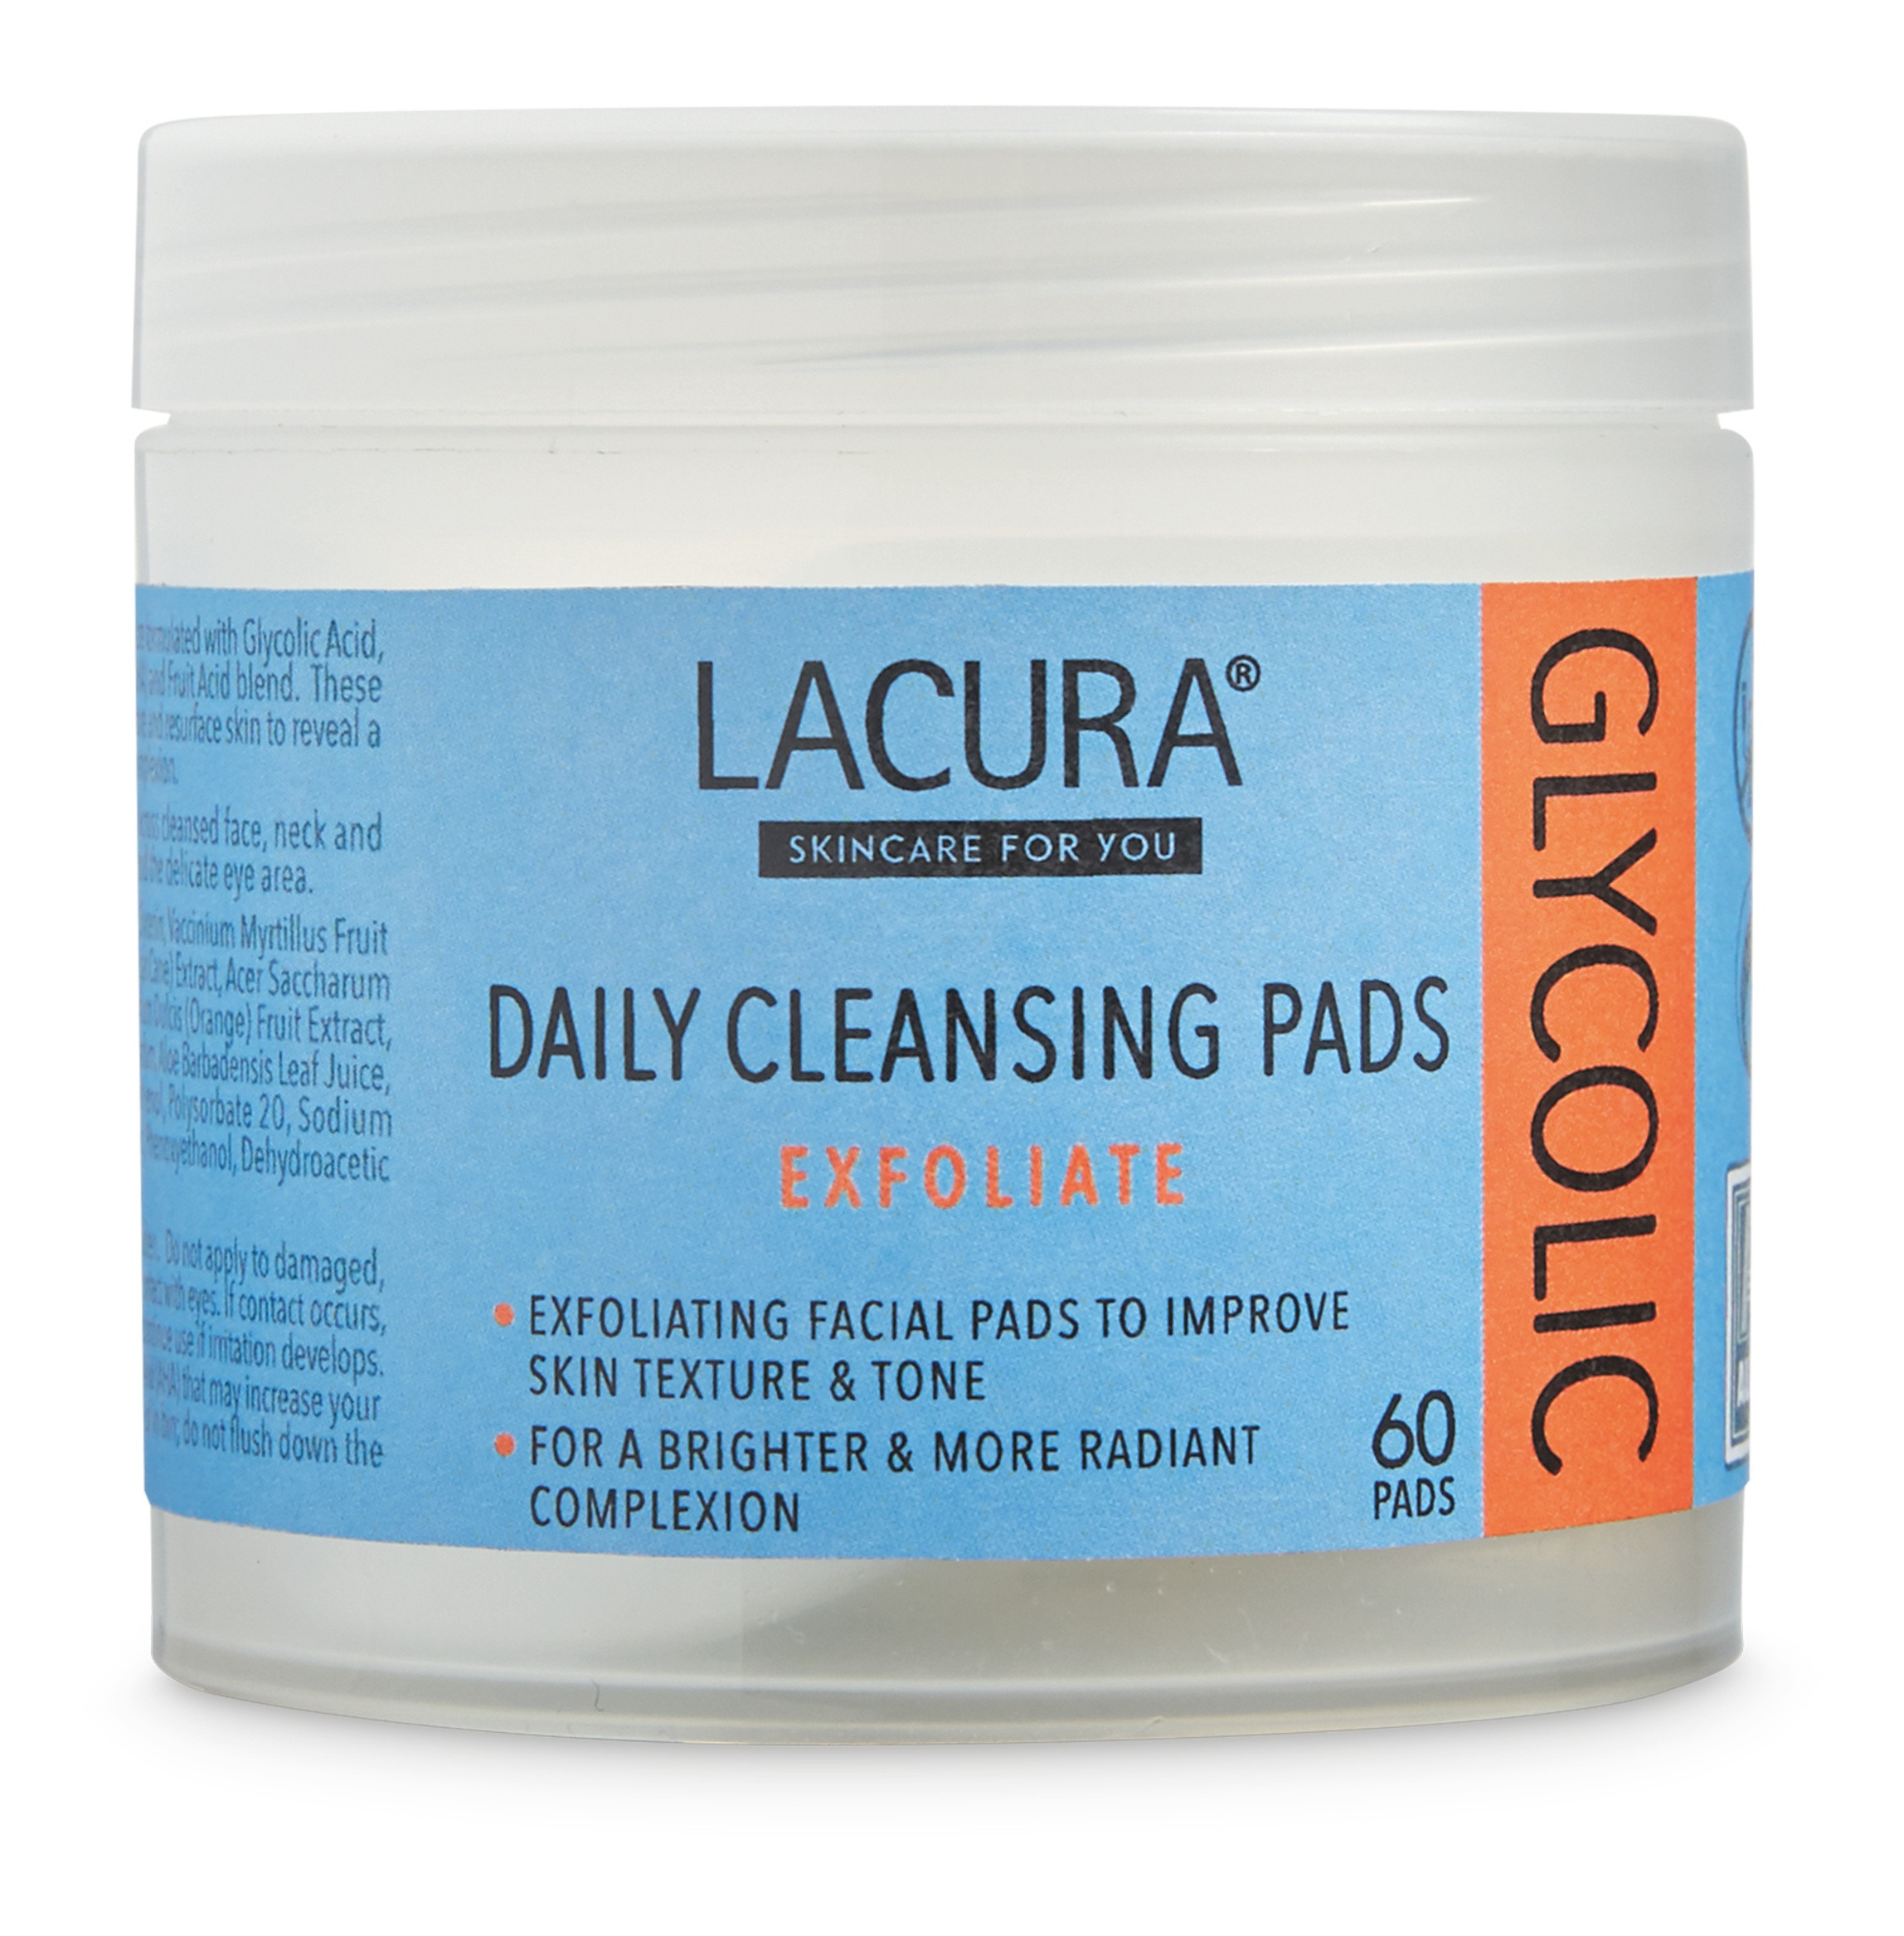 LACURA Daily Cleansing Pads